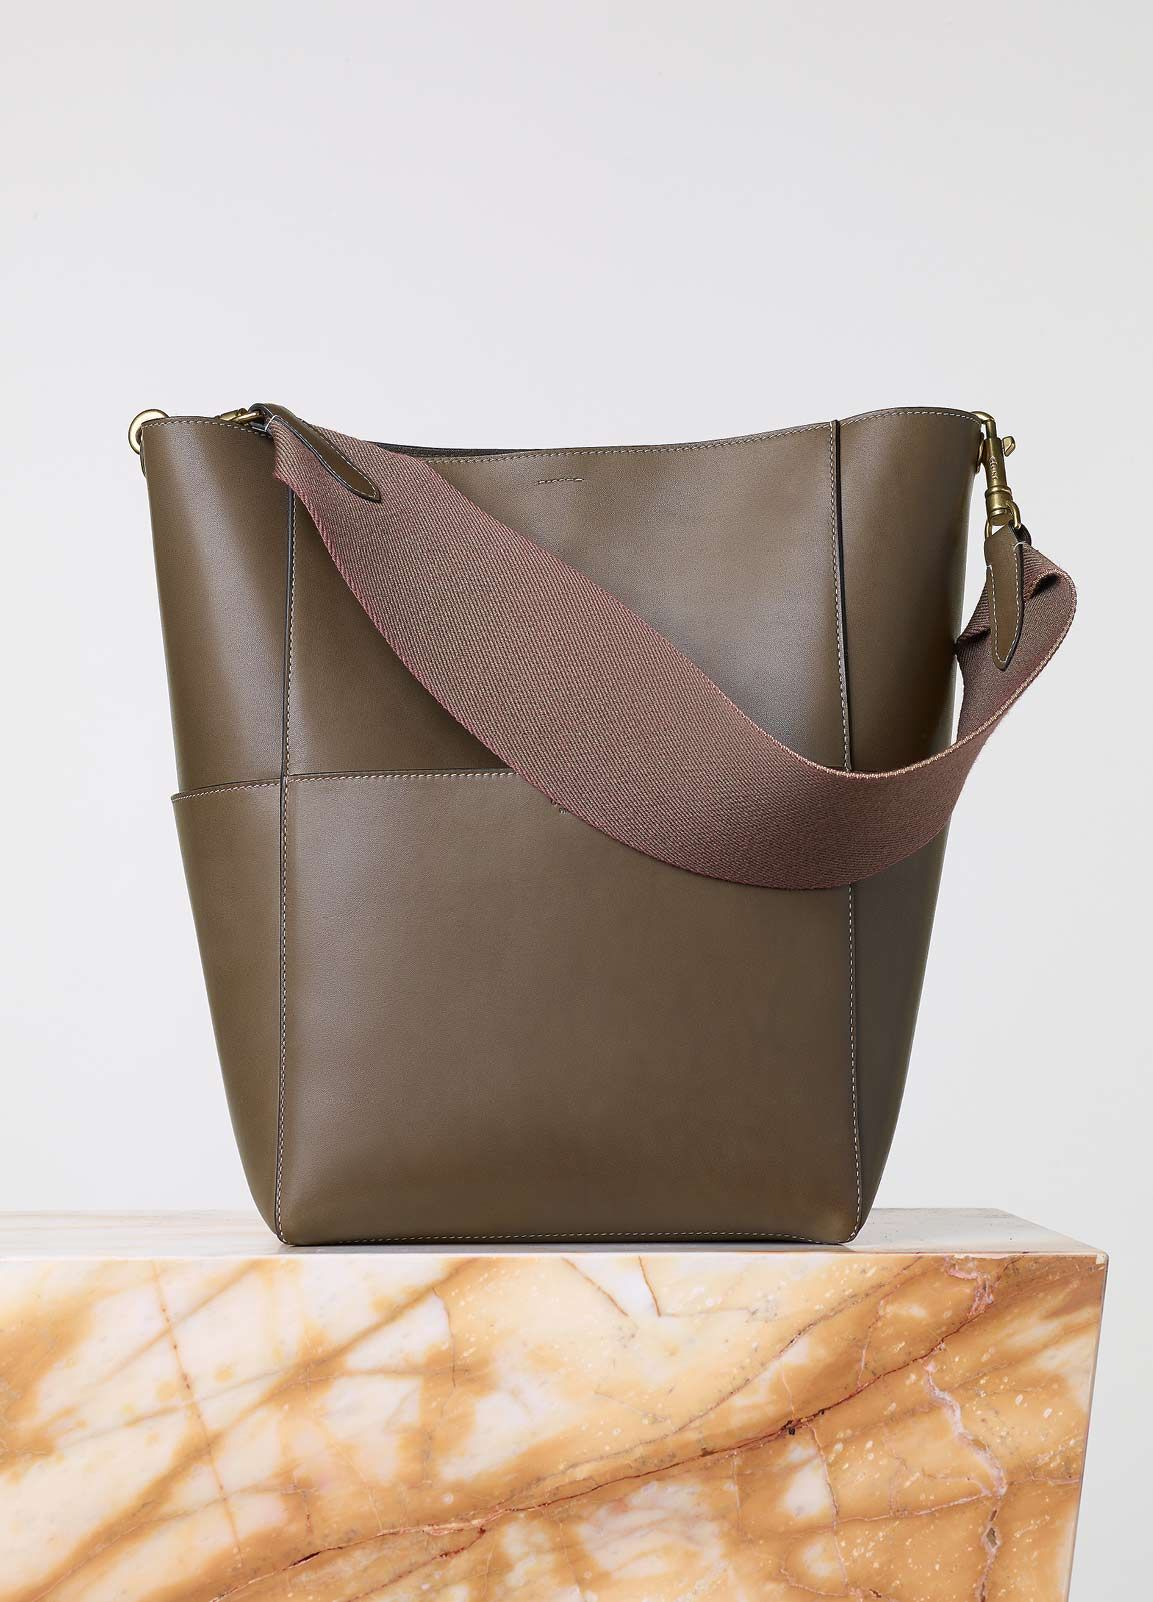 Sangle Seau Bag in Natural Calfskin - Fall   Winter Collection 2015 ... fa1189348f6d7